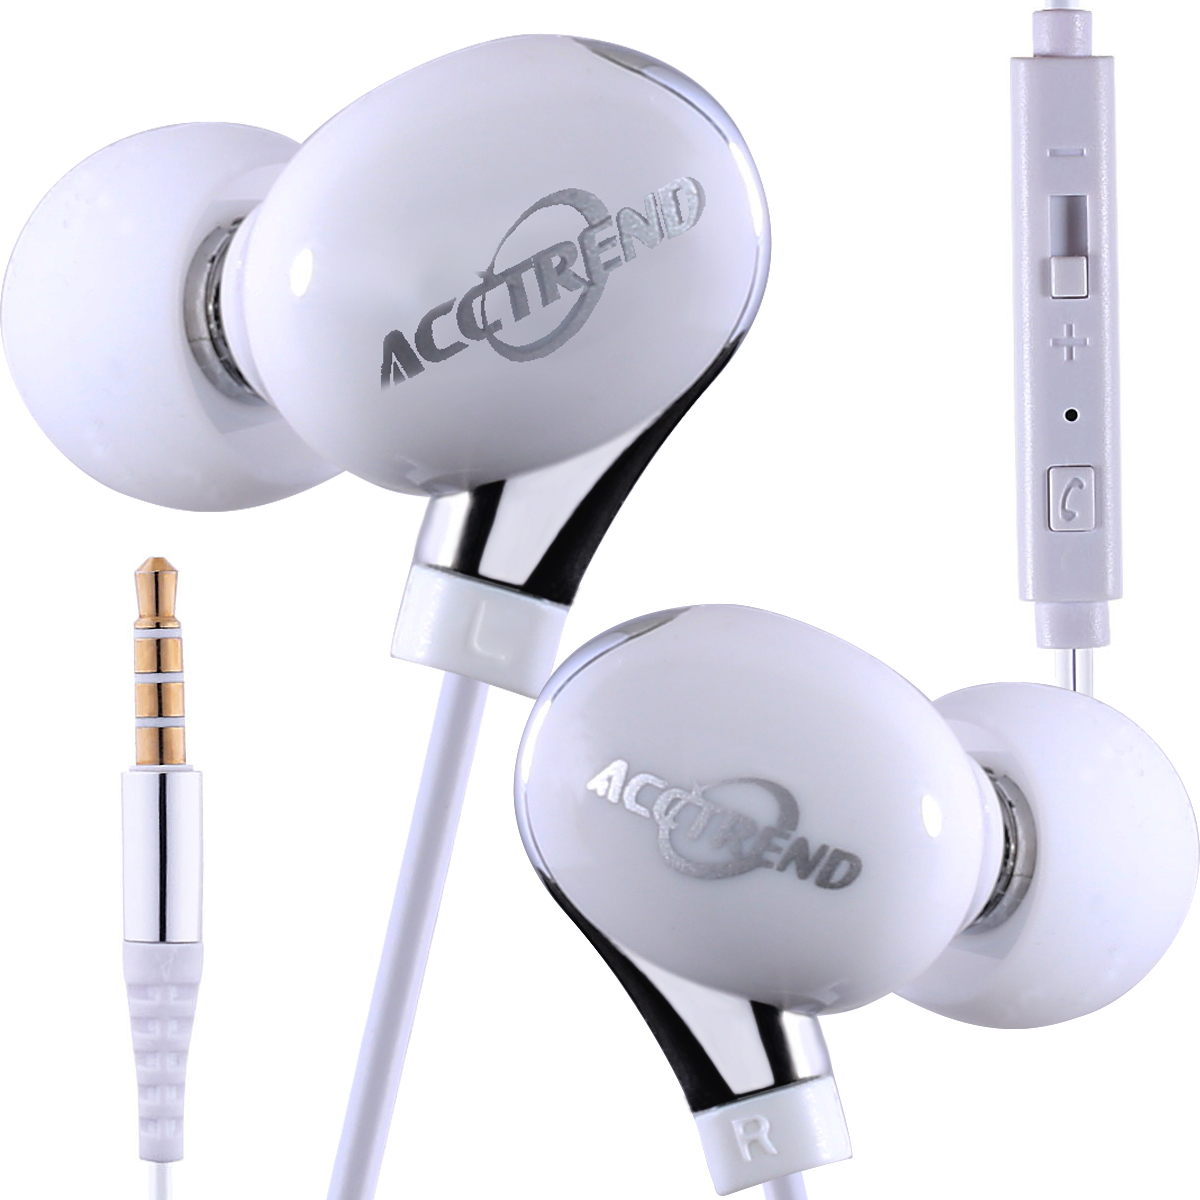 New In-Ear Buds Bass Earphones Headphones w/Mic for Smartphones 3.5mm, White